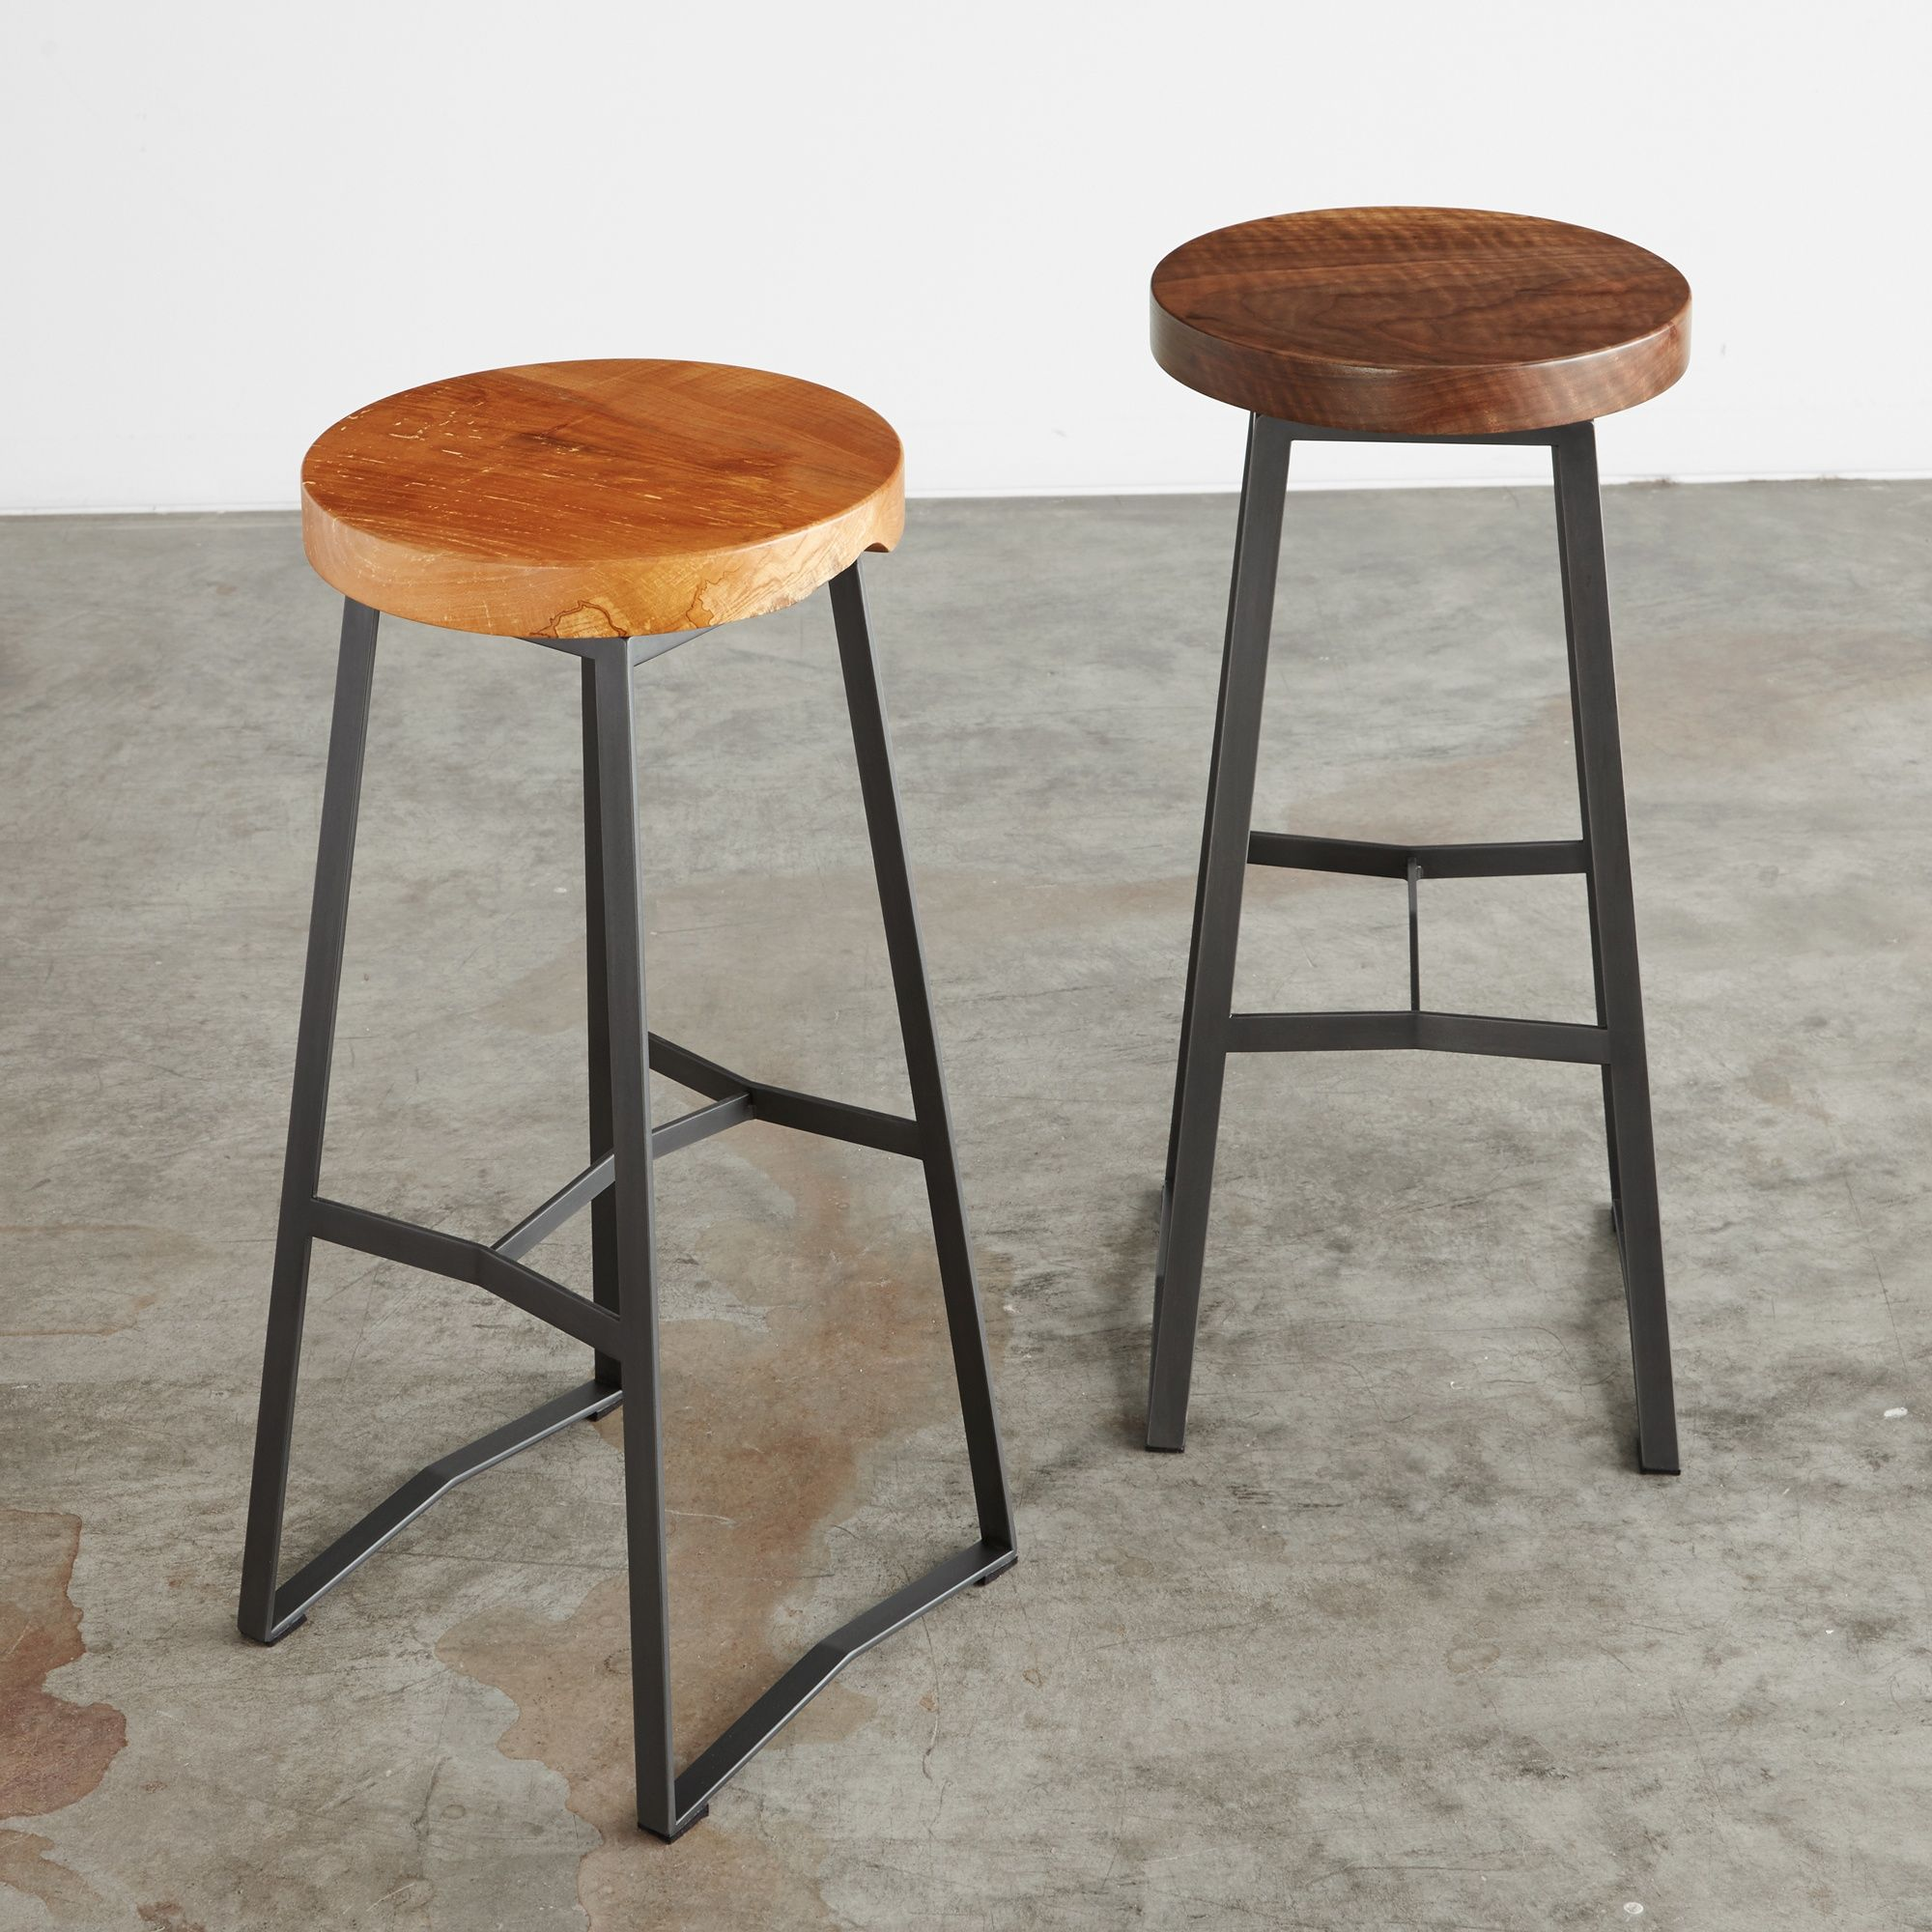 A Round Wood Swivel Seat Sometimes With A Bit Of Live Edge On A